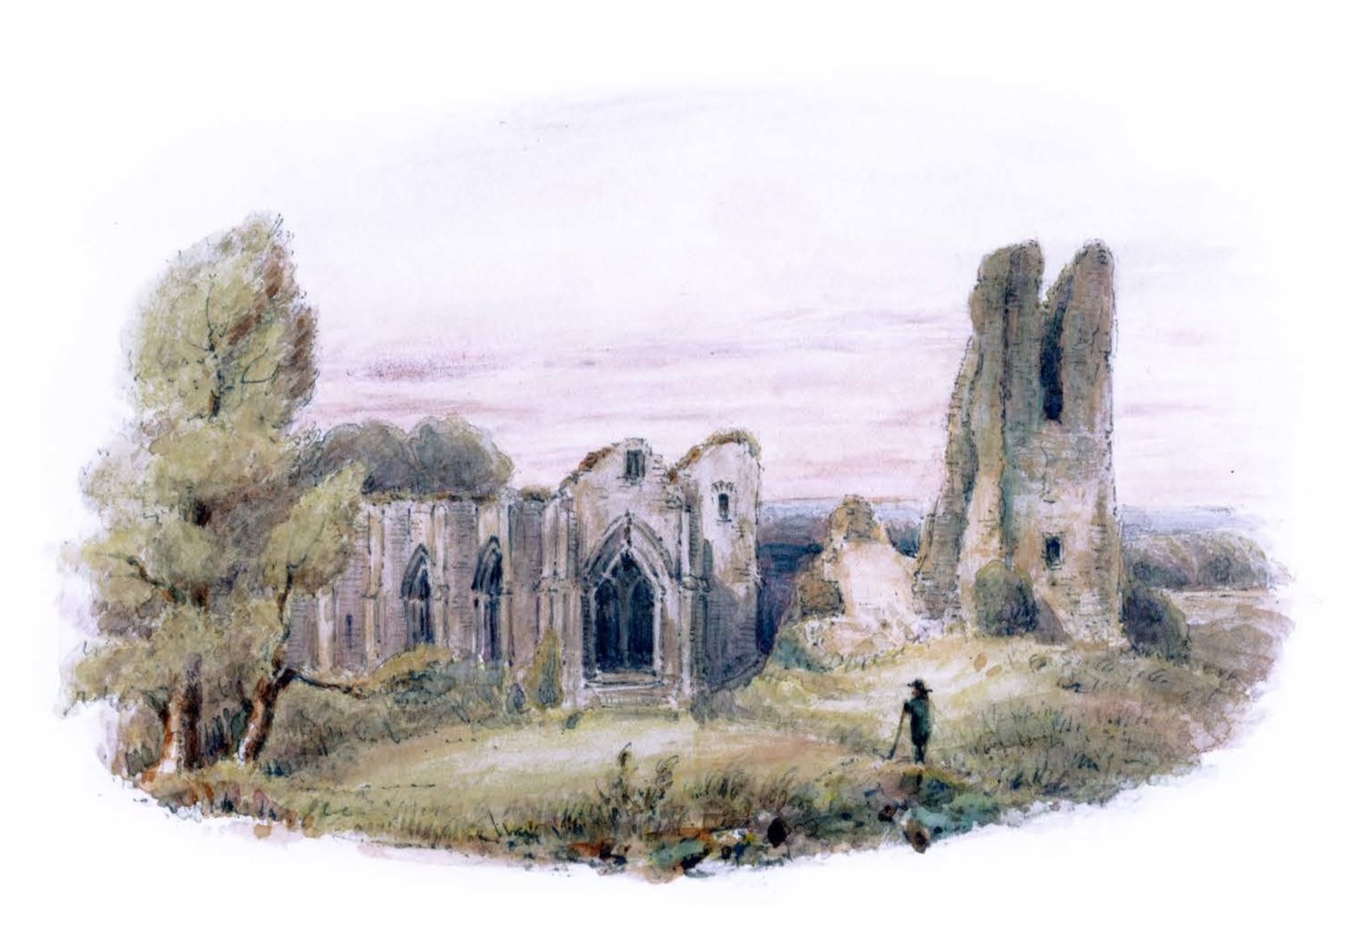 Robert Burns, Lincluden Abbey from  Views of the Haunts and Homes of the British Poets, Oct. 19 1850.